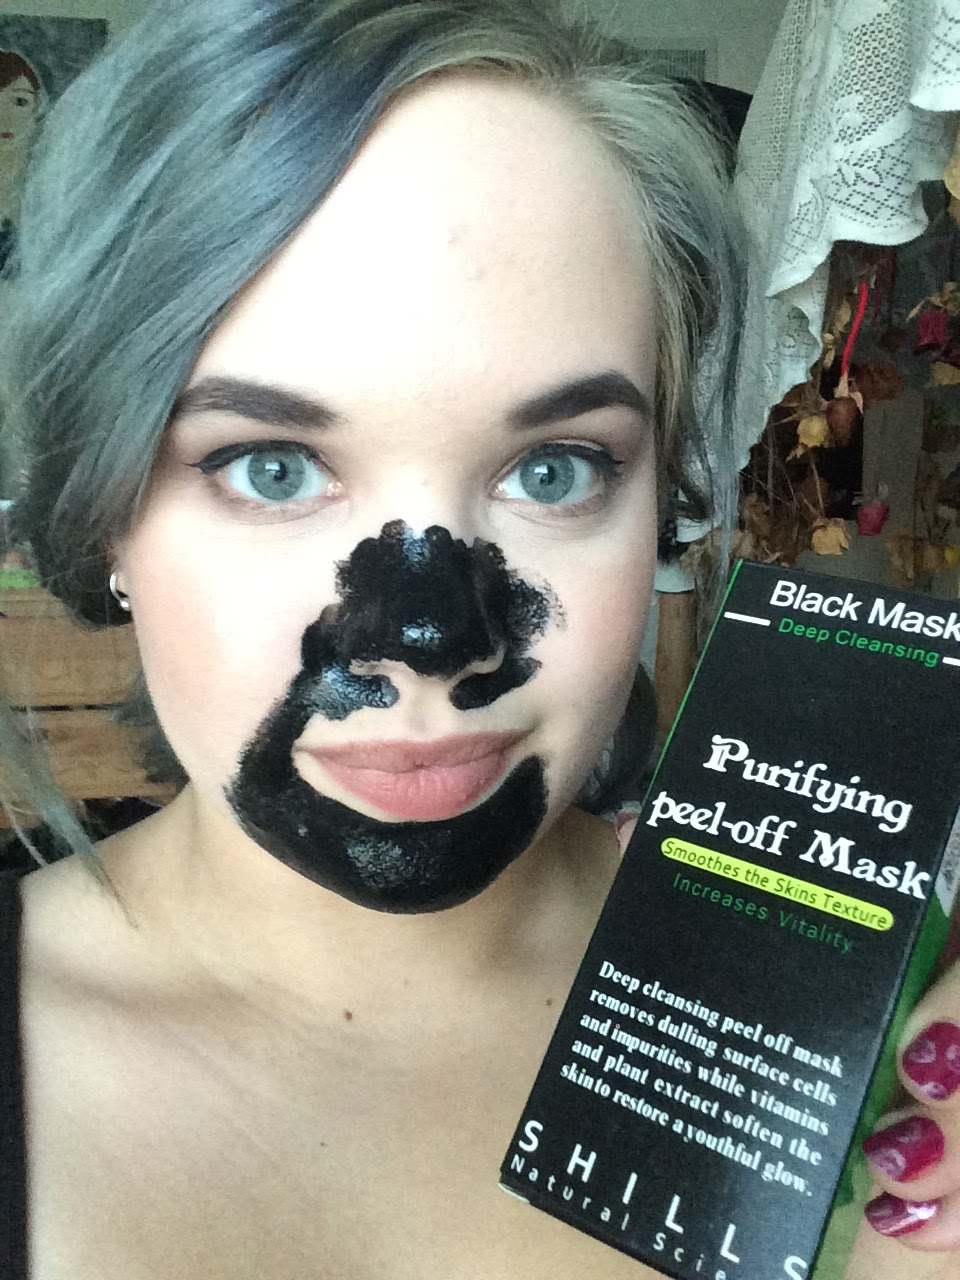 Shills Natural Science Purifying Peel Off Mask